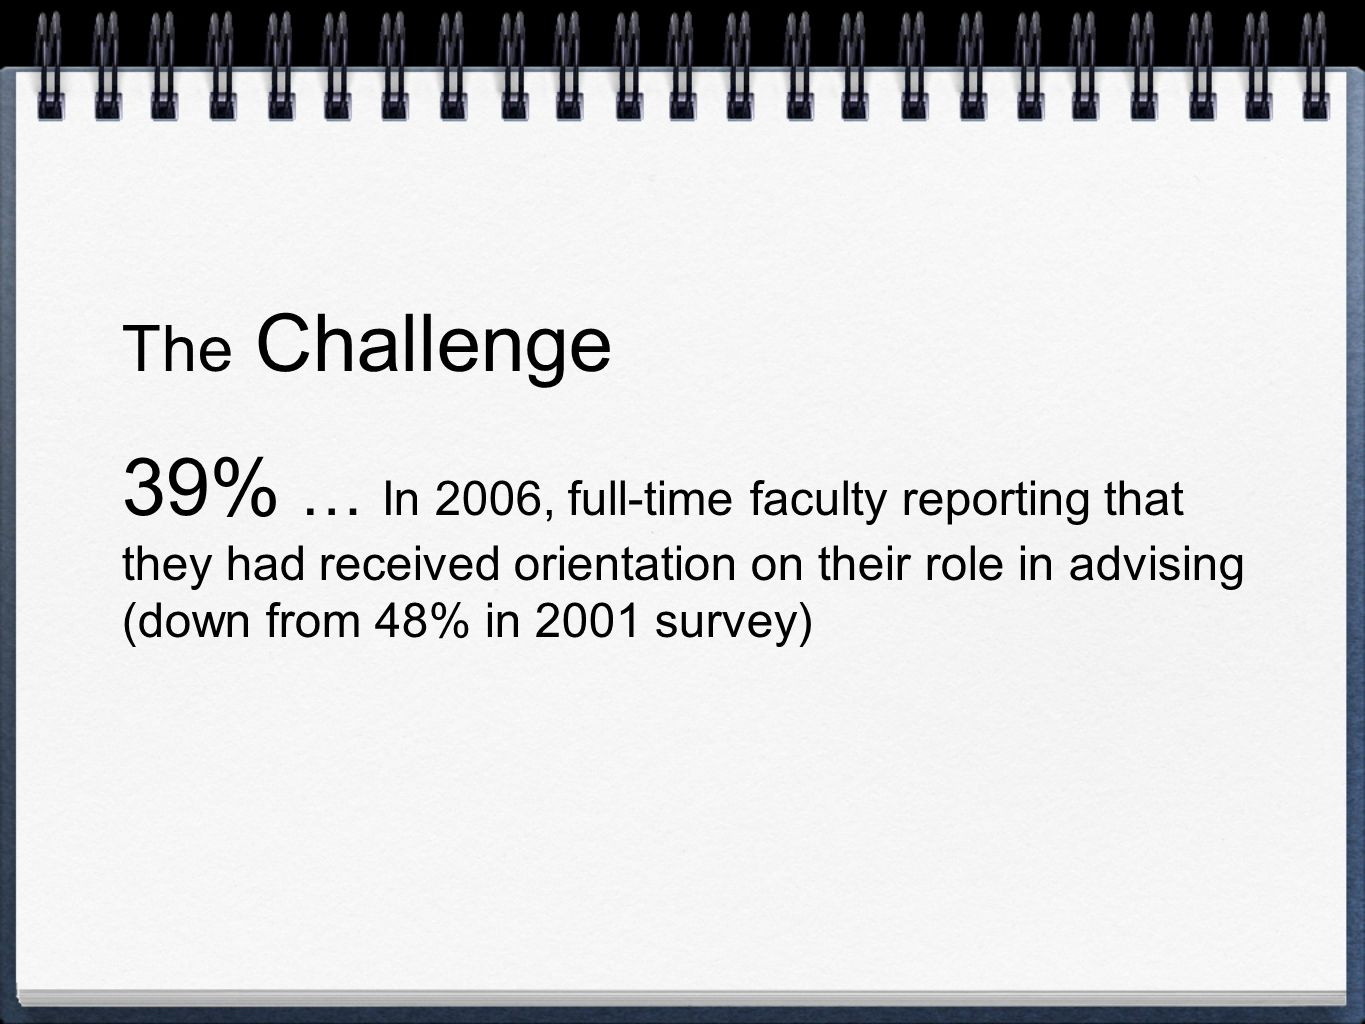 The Challenge 39% … In 2006, full-time faculty reporting that they had received orientation on their role in advising (down from 48% in 2001 survey)